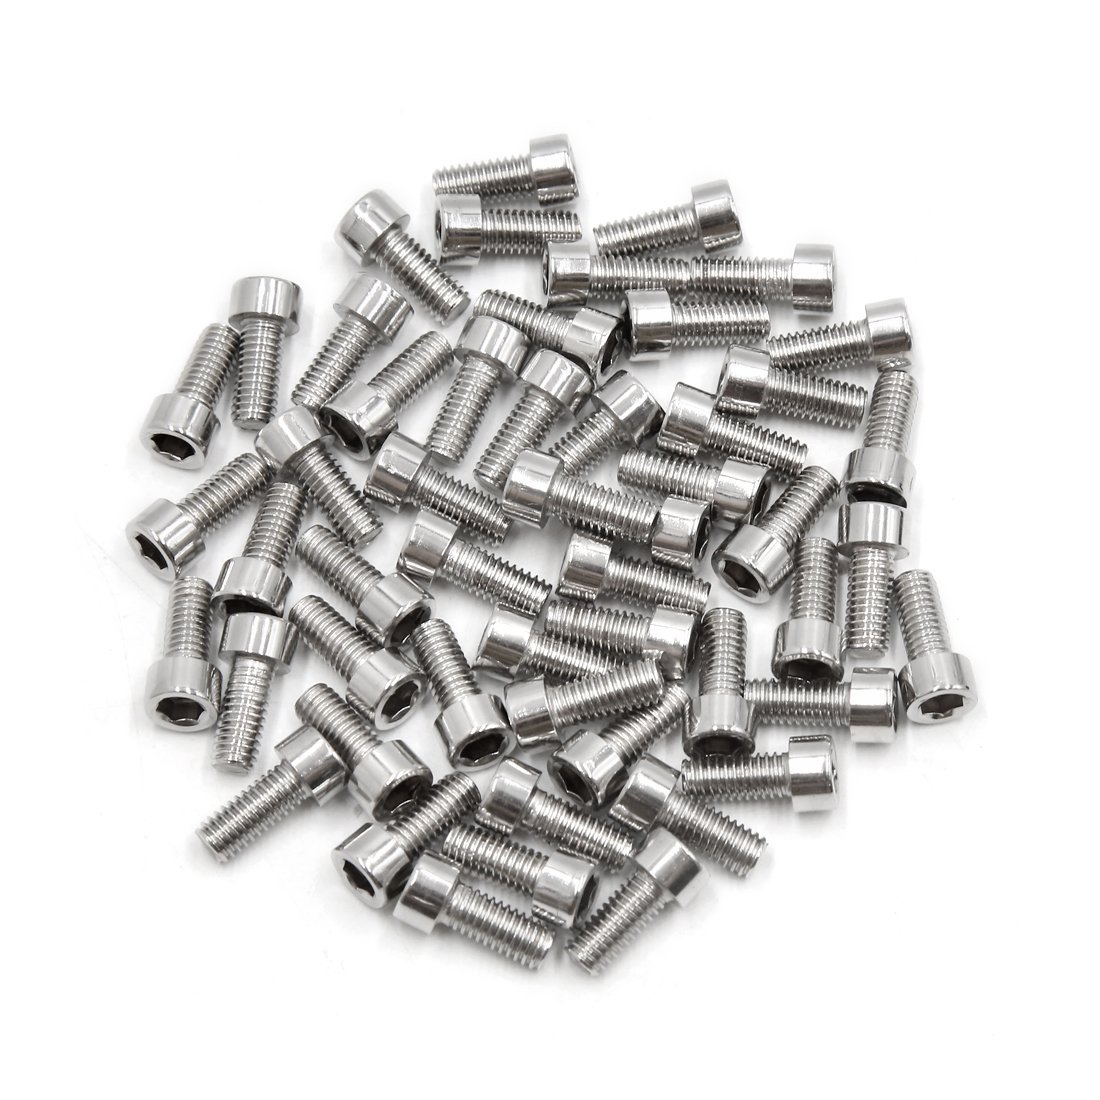 uxcell 50pcs Silver Tone Stainless Steel Motorcycle Hexagon Bolts Hex Screws M6 x 14